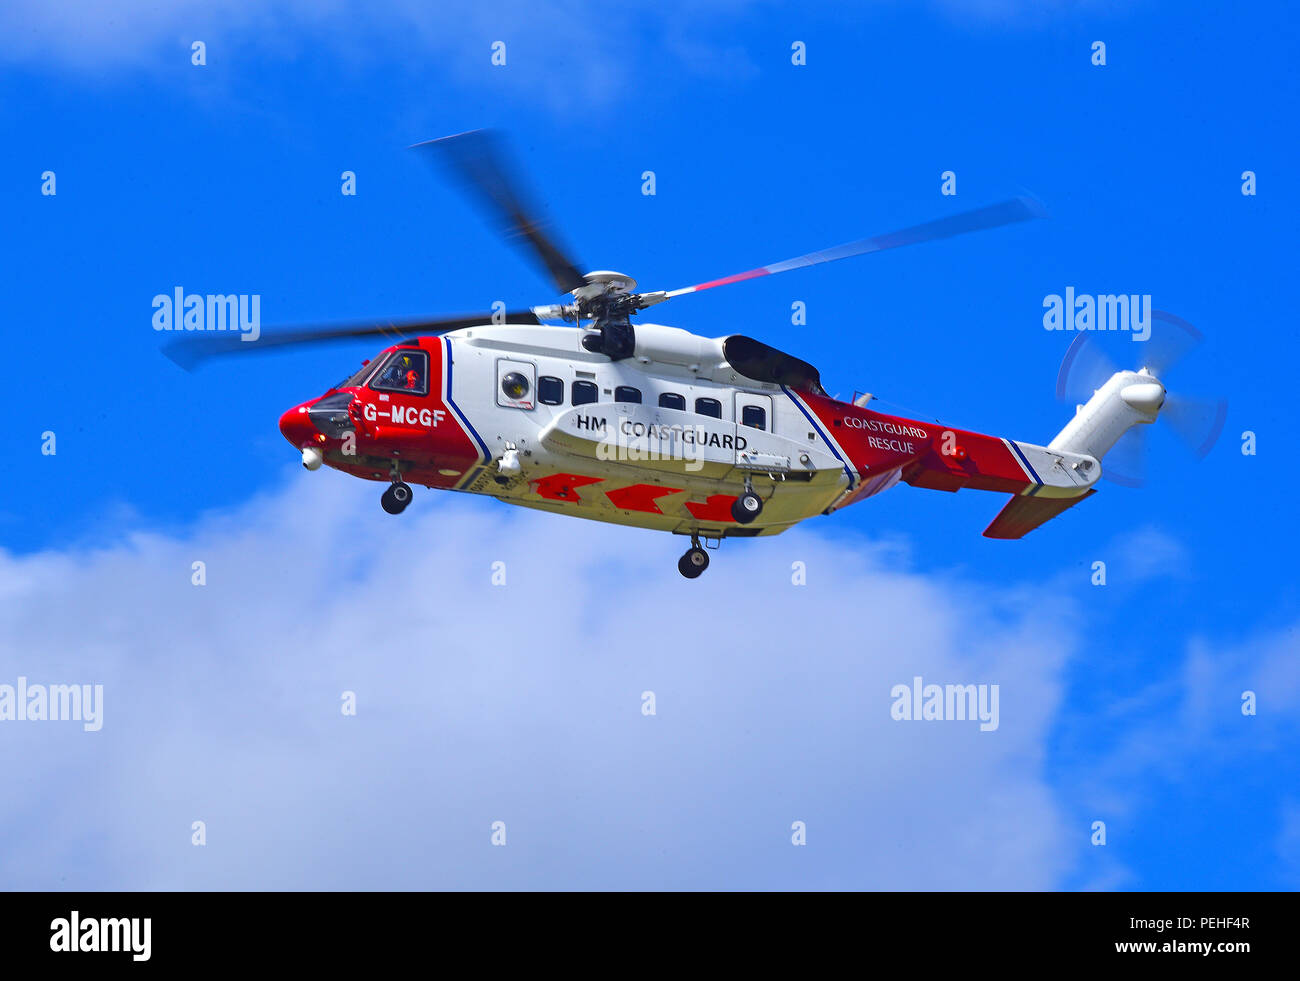 G-MCGF one of two maritime and search and rescue S-92 Helicopters based at Inverness to cover any SAR requirements in Northern Scotland. - Stock Image